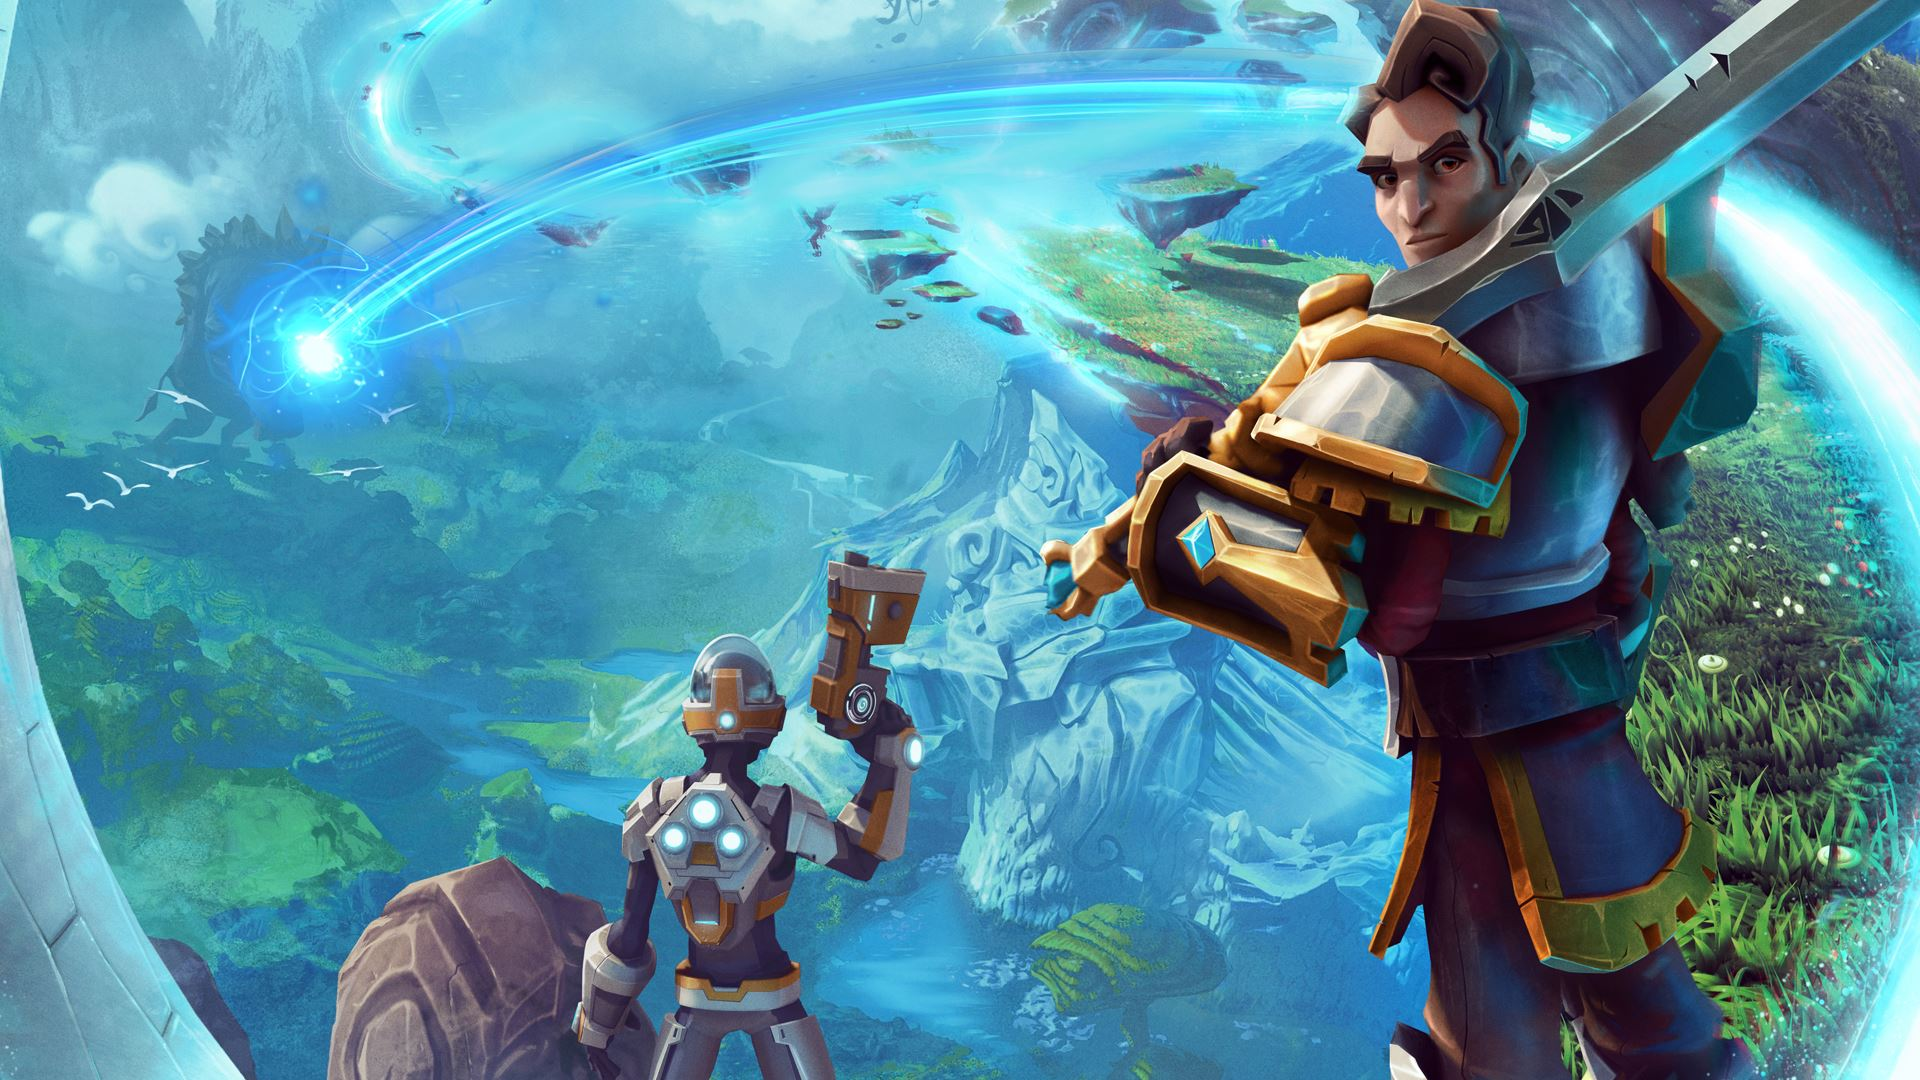 Project Spark loses its spark